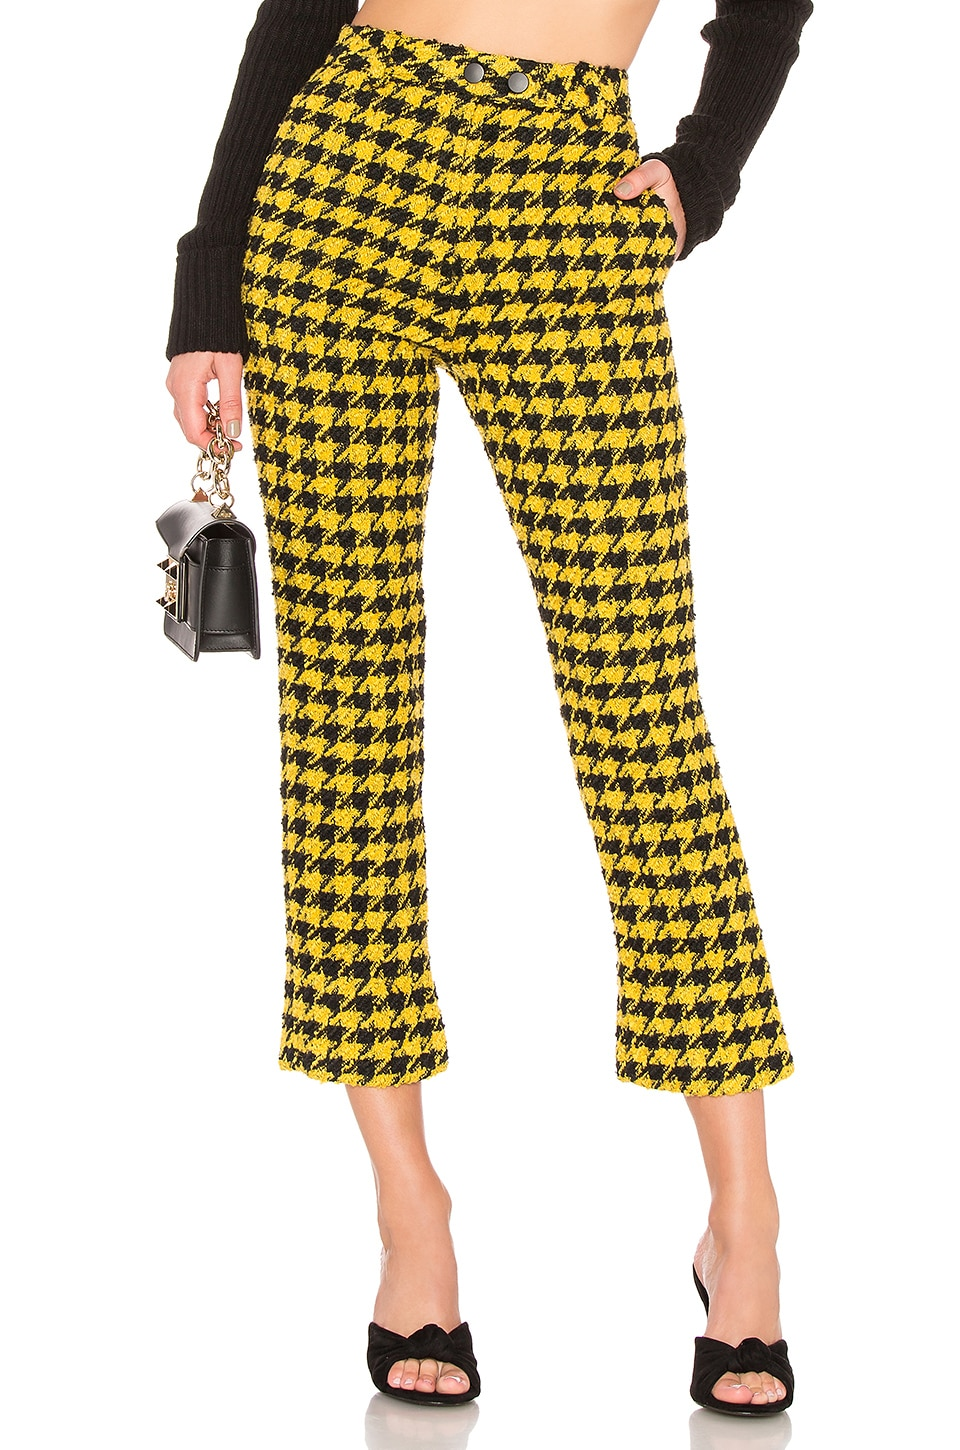 House of Harlow 1960 X REVOLVE Juni Pant in Yellow & Black